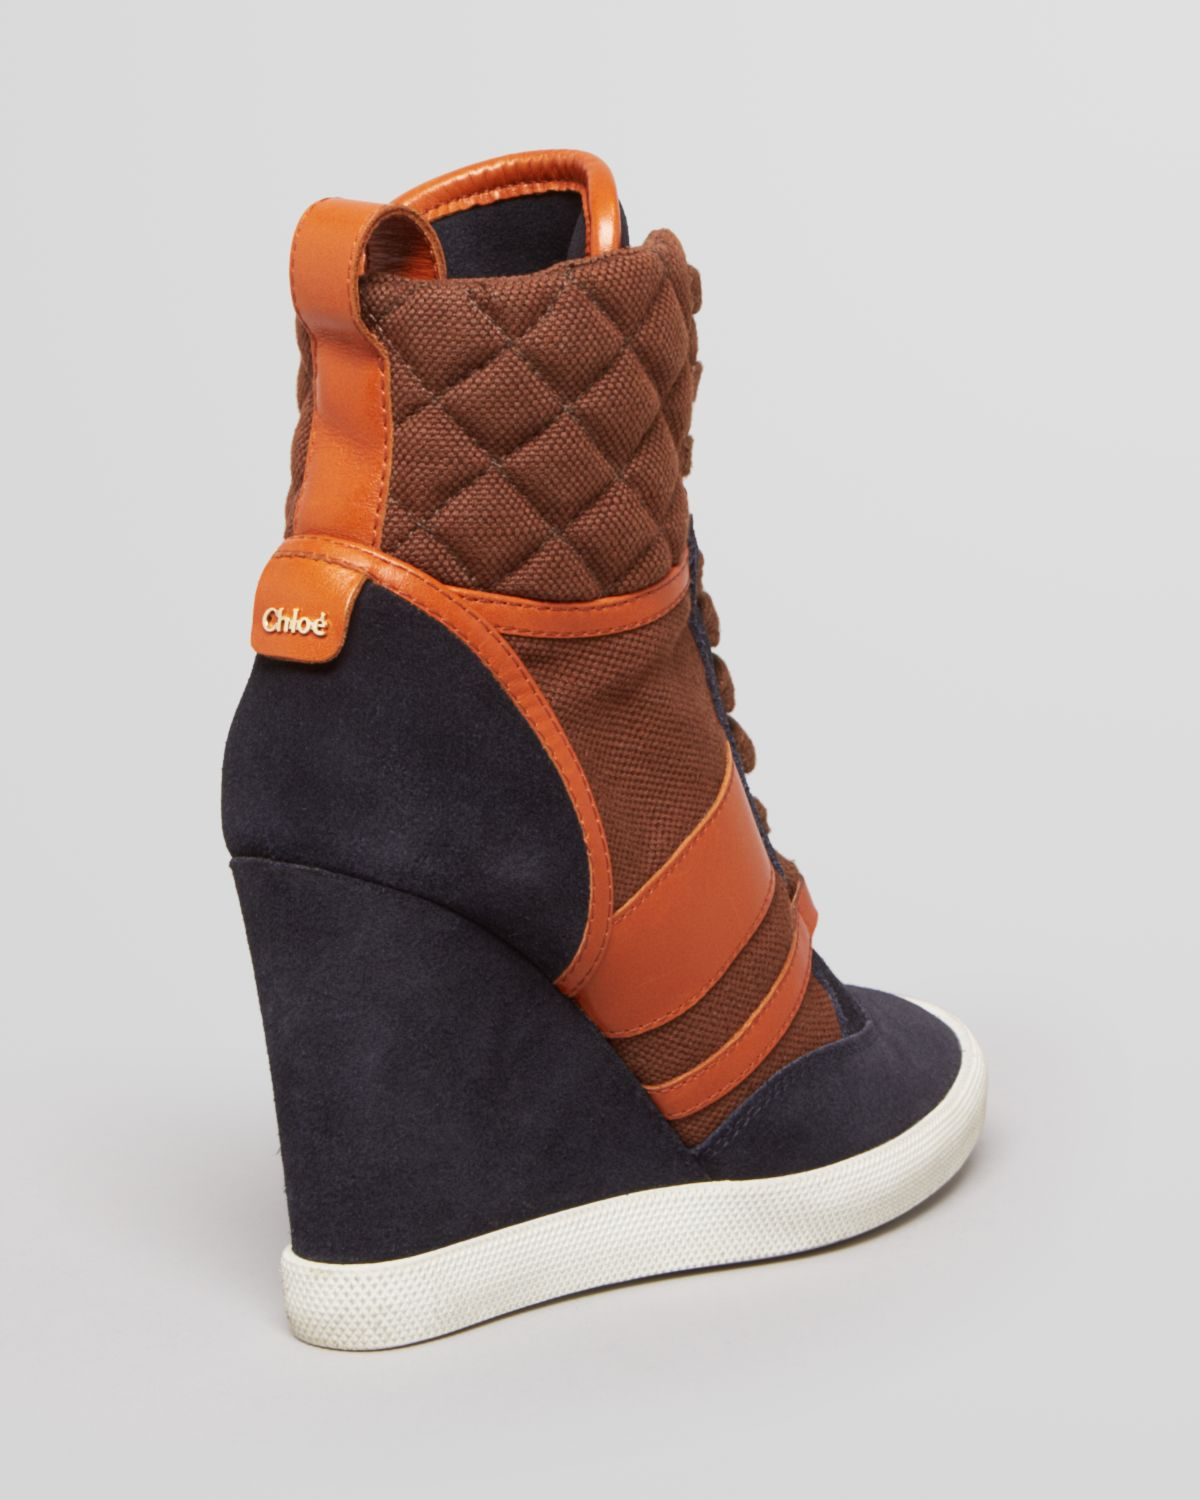 chlo lace up wedge sneakers kasia in orange lyst. Black Bedroom Furniture Sets. Home Design Ideas